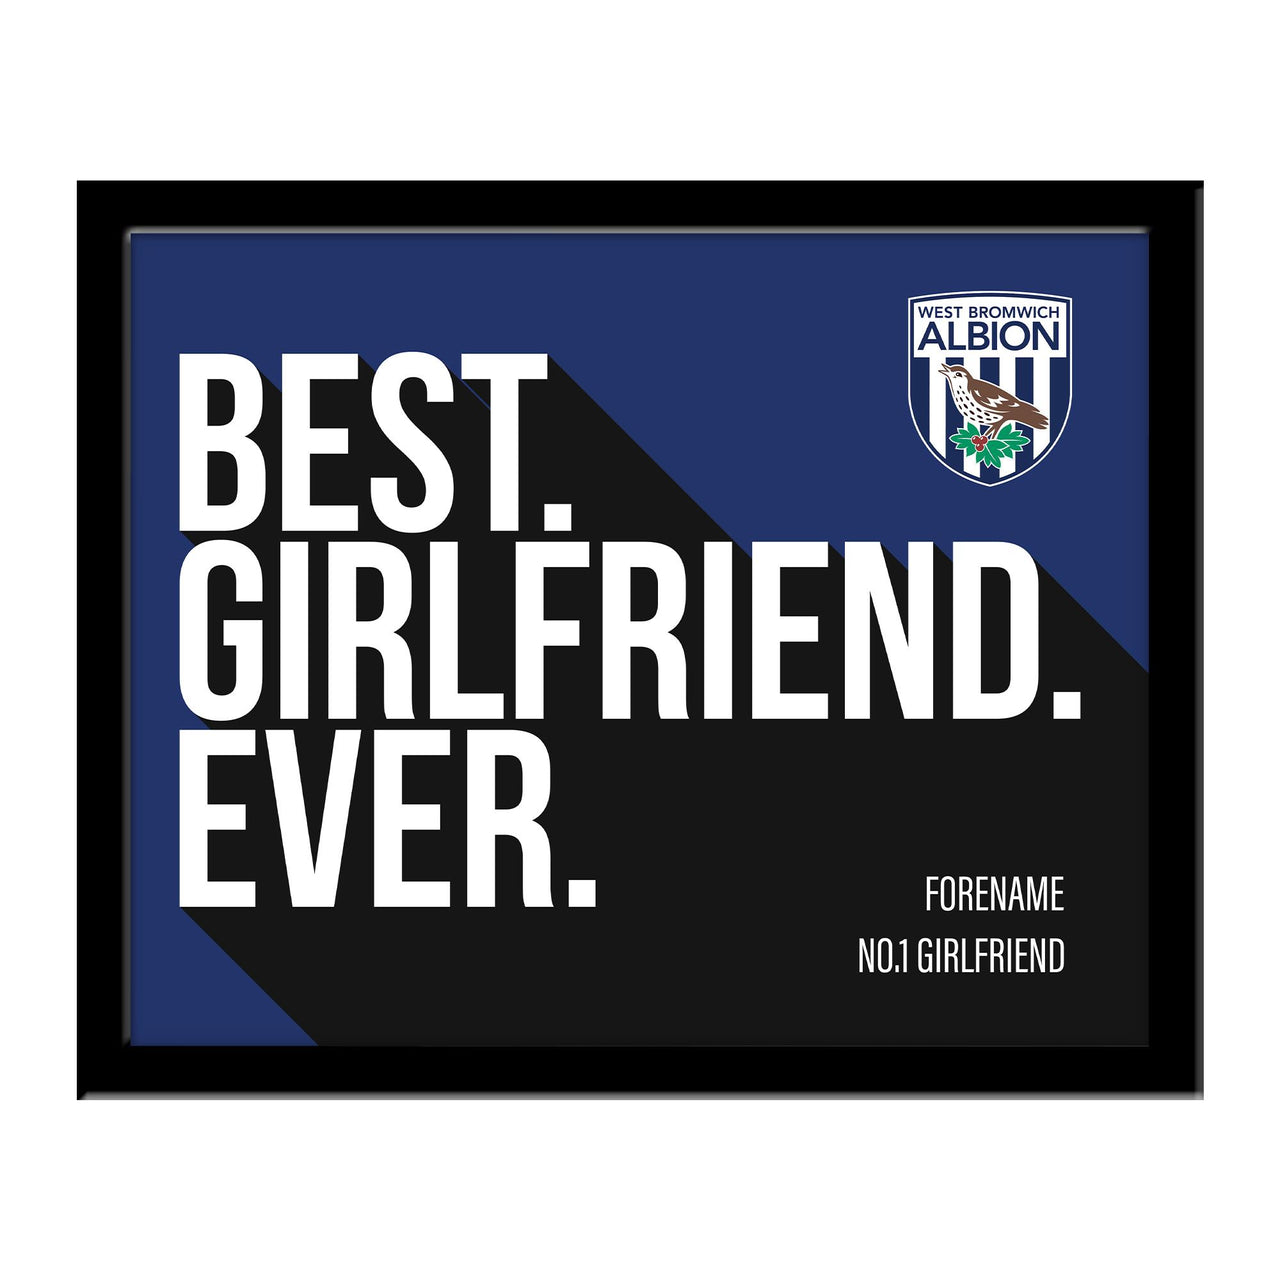 West Bromwich Albion Best Girlfriend Ever 10 x 8 Photo Framed